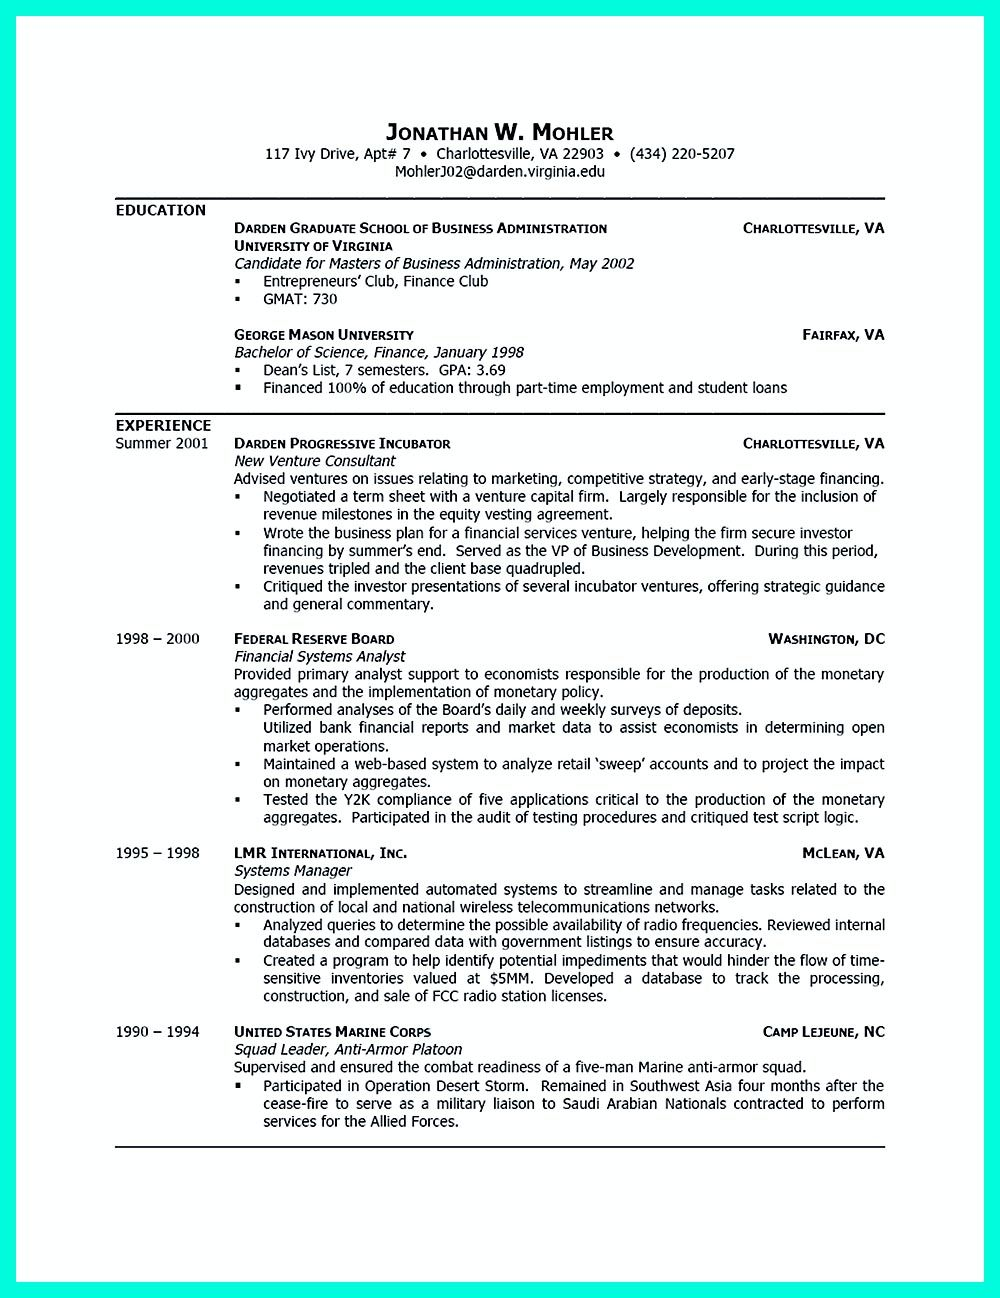 Resume Experience Example College Resume Is Designed For College Students Either With Or